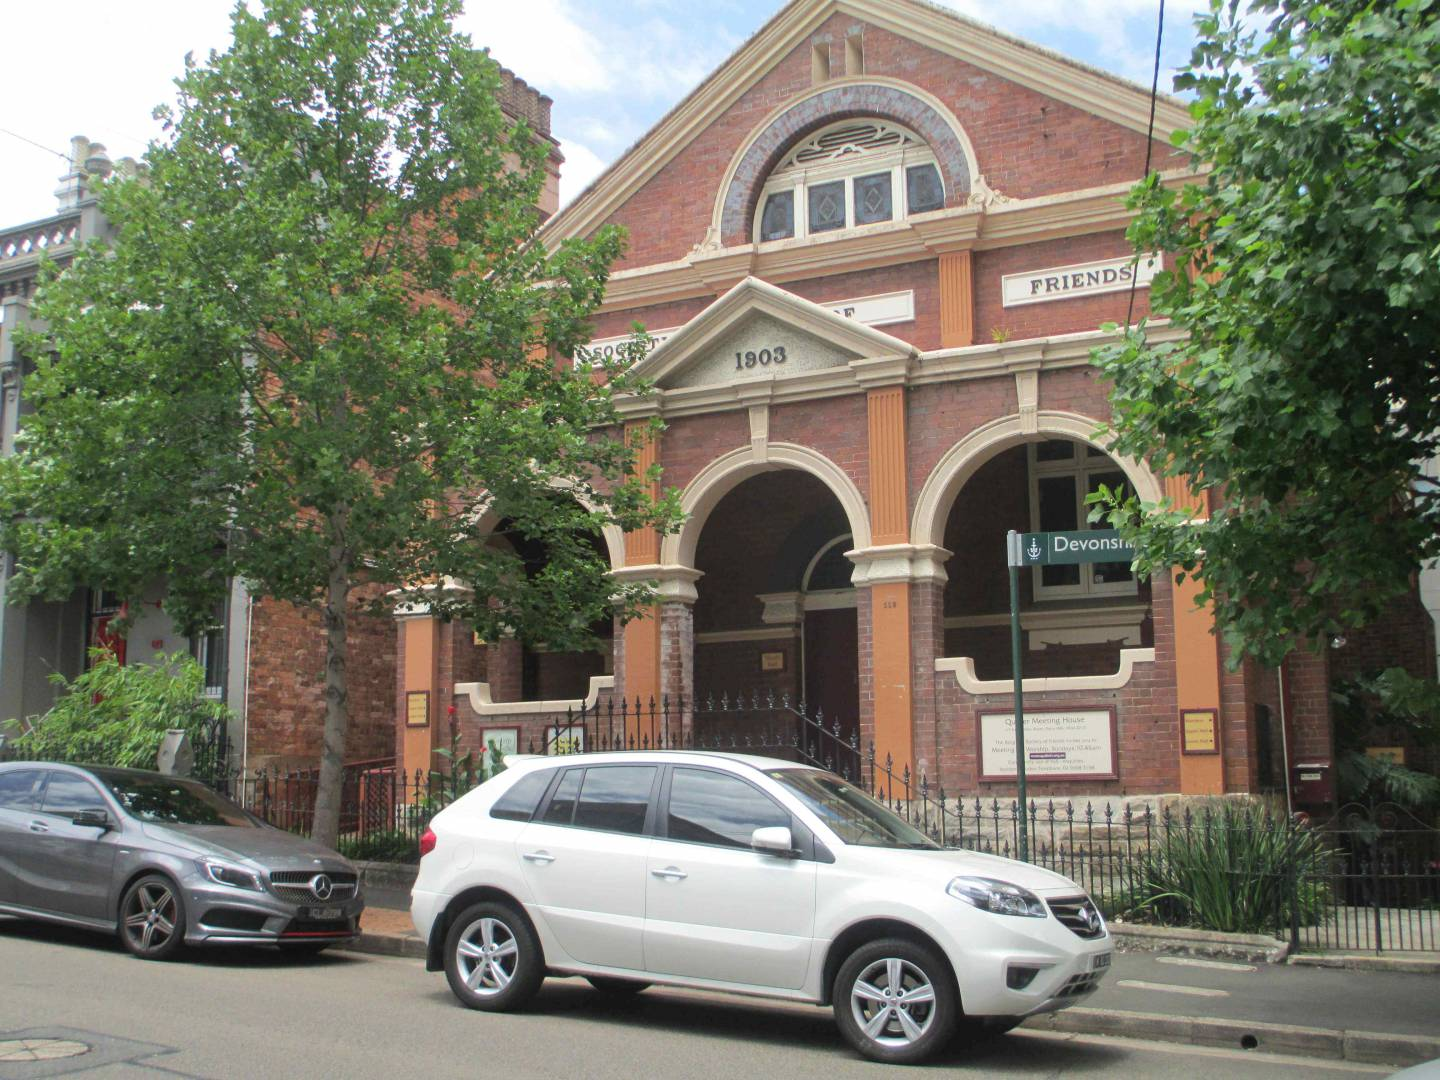 The Religious Society of Friends - Quaker Church